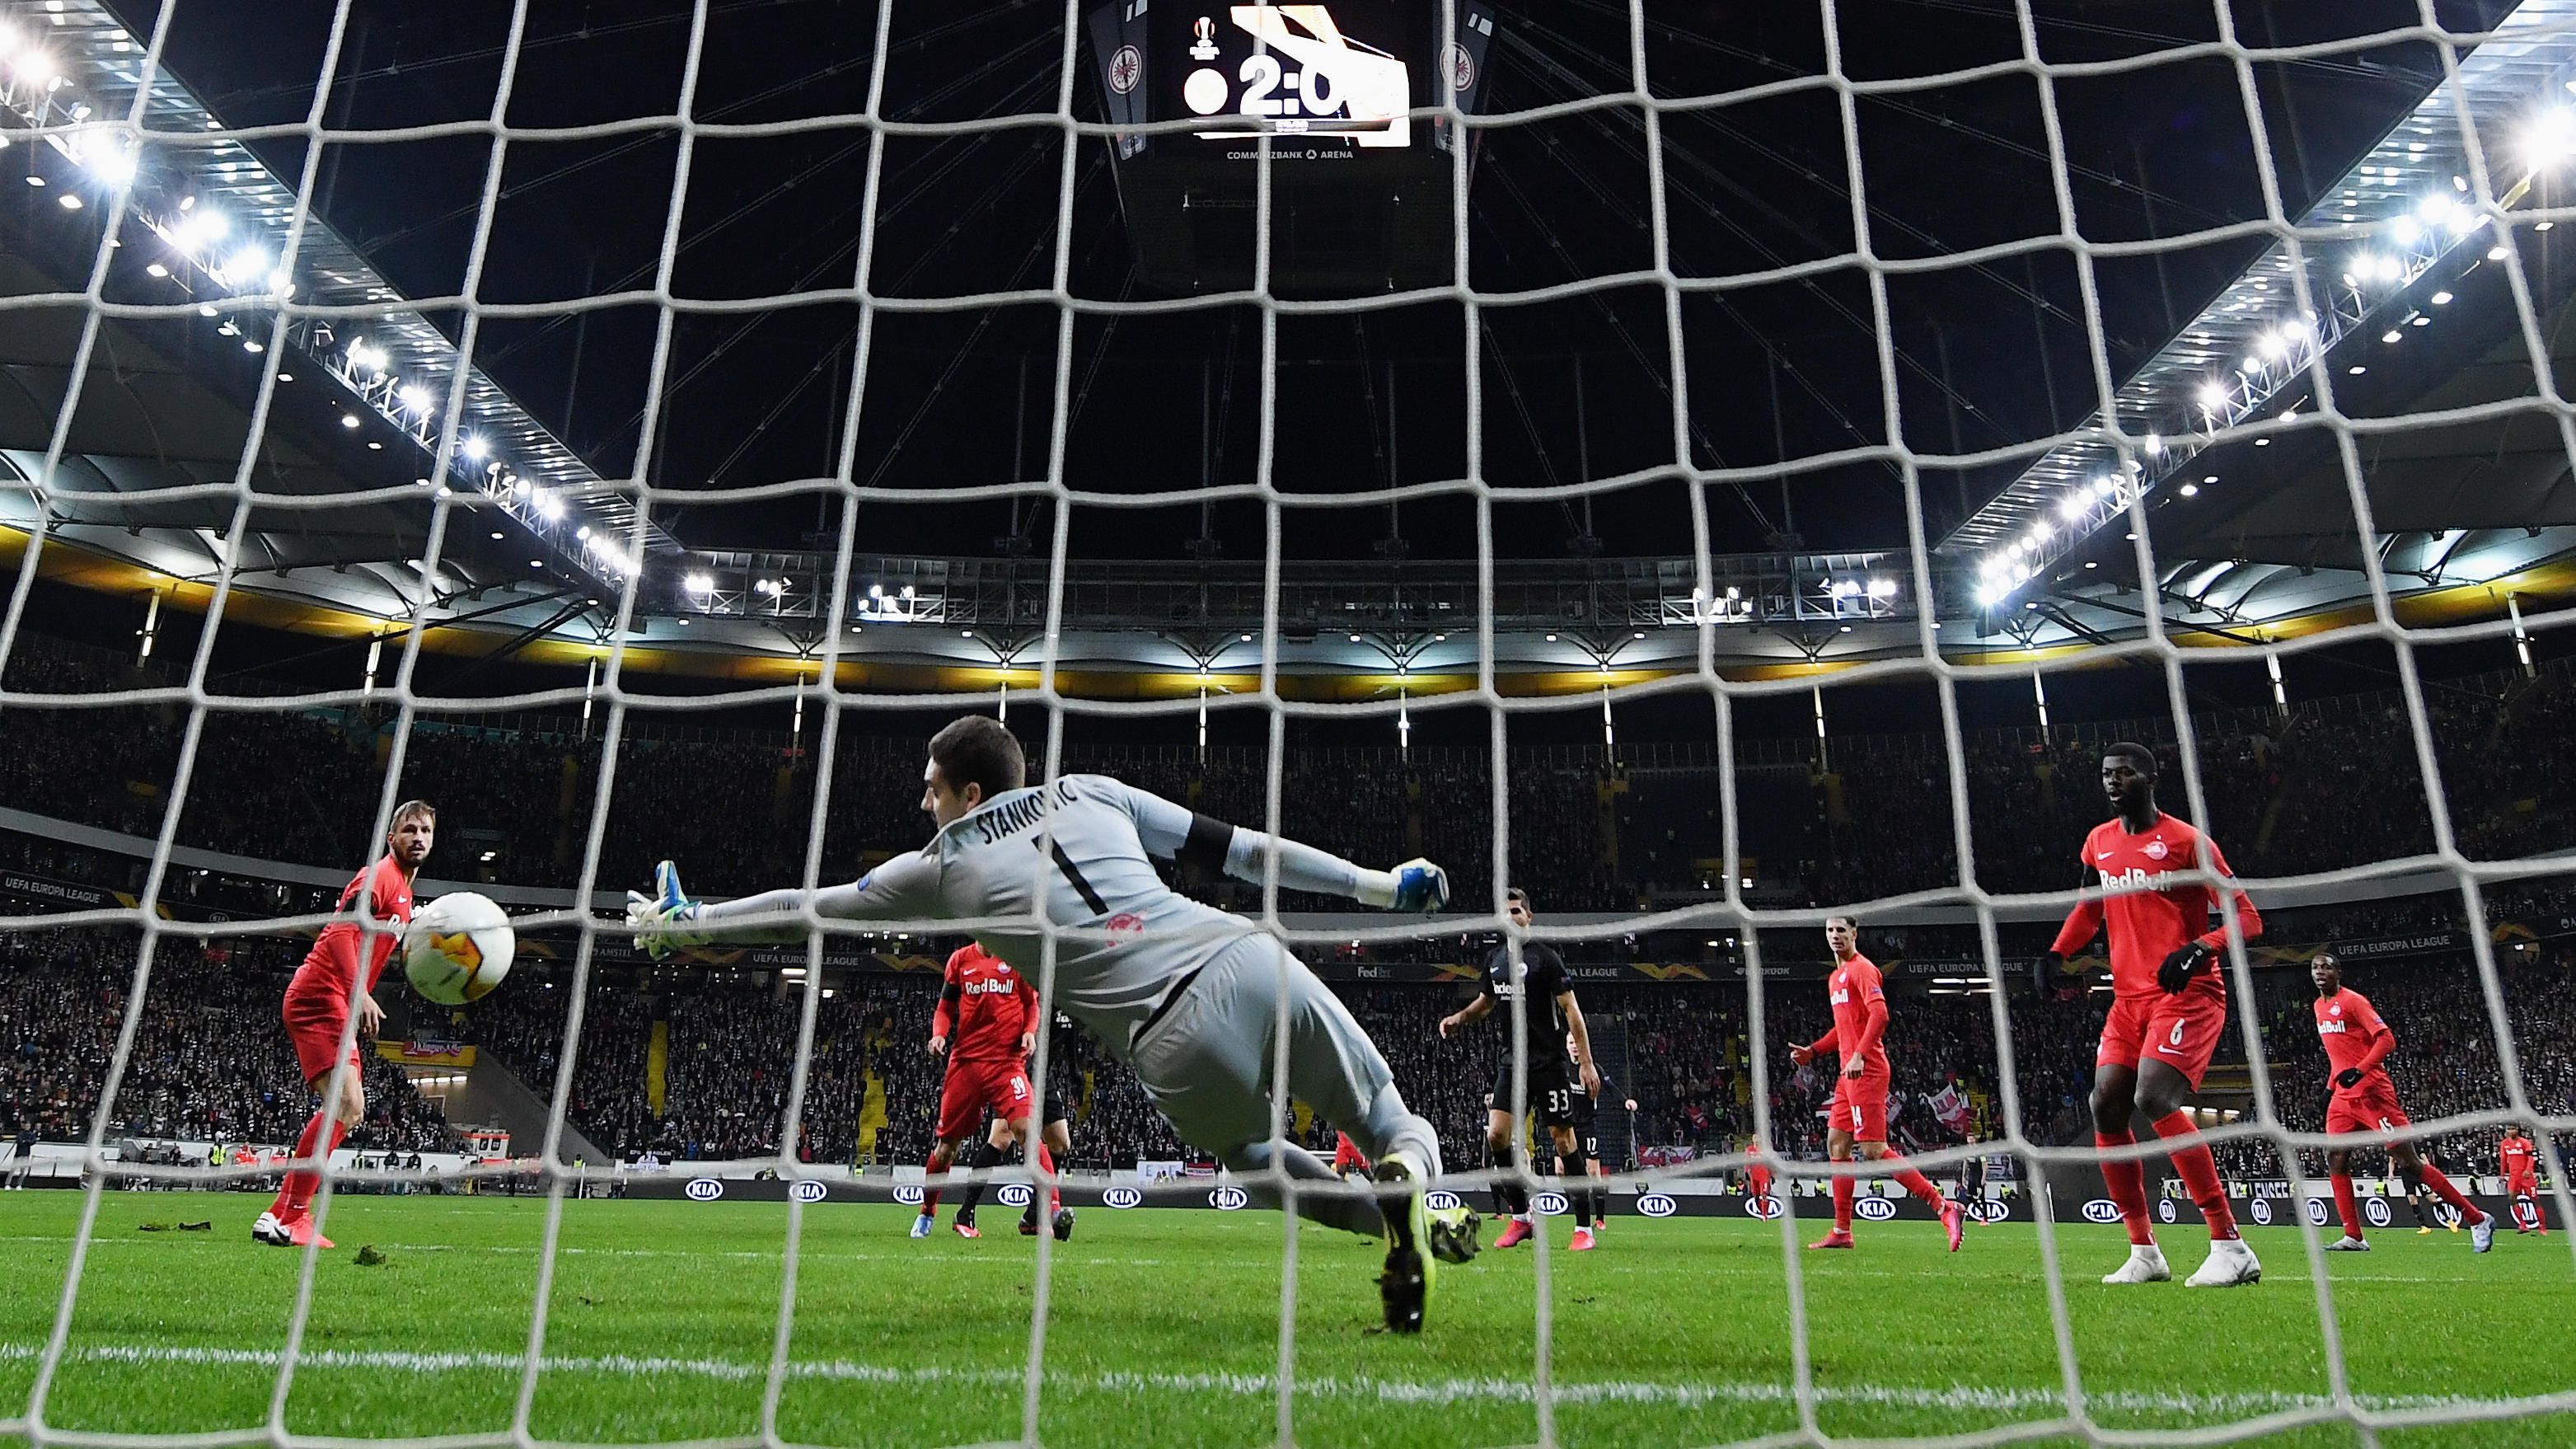 FRANKFURT AM MAIN, GERMANY - FEBRUARY 20: Daichi Kamada of Frankfurt scores his team's third goal during the UEFA Europa League round of 32 first leg match between Eintracht Frankfurt and FC Red Bull Salzburg at Commerzbank Arena on February 20, 2020